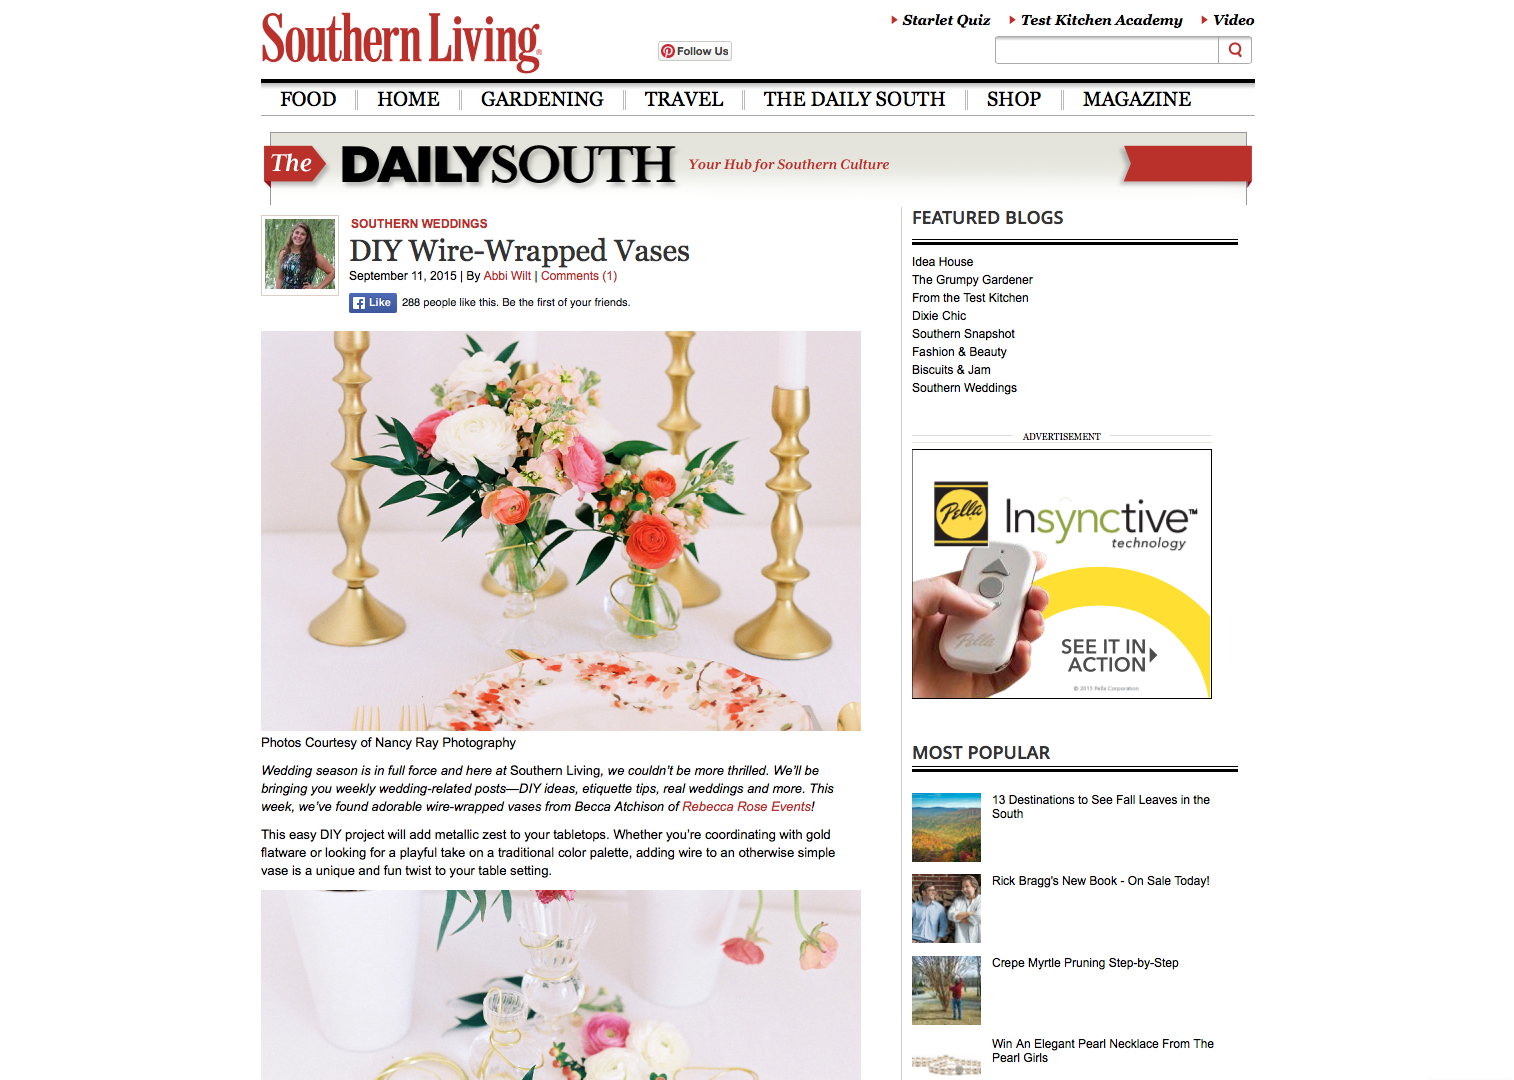 Daily South